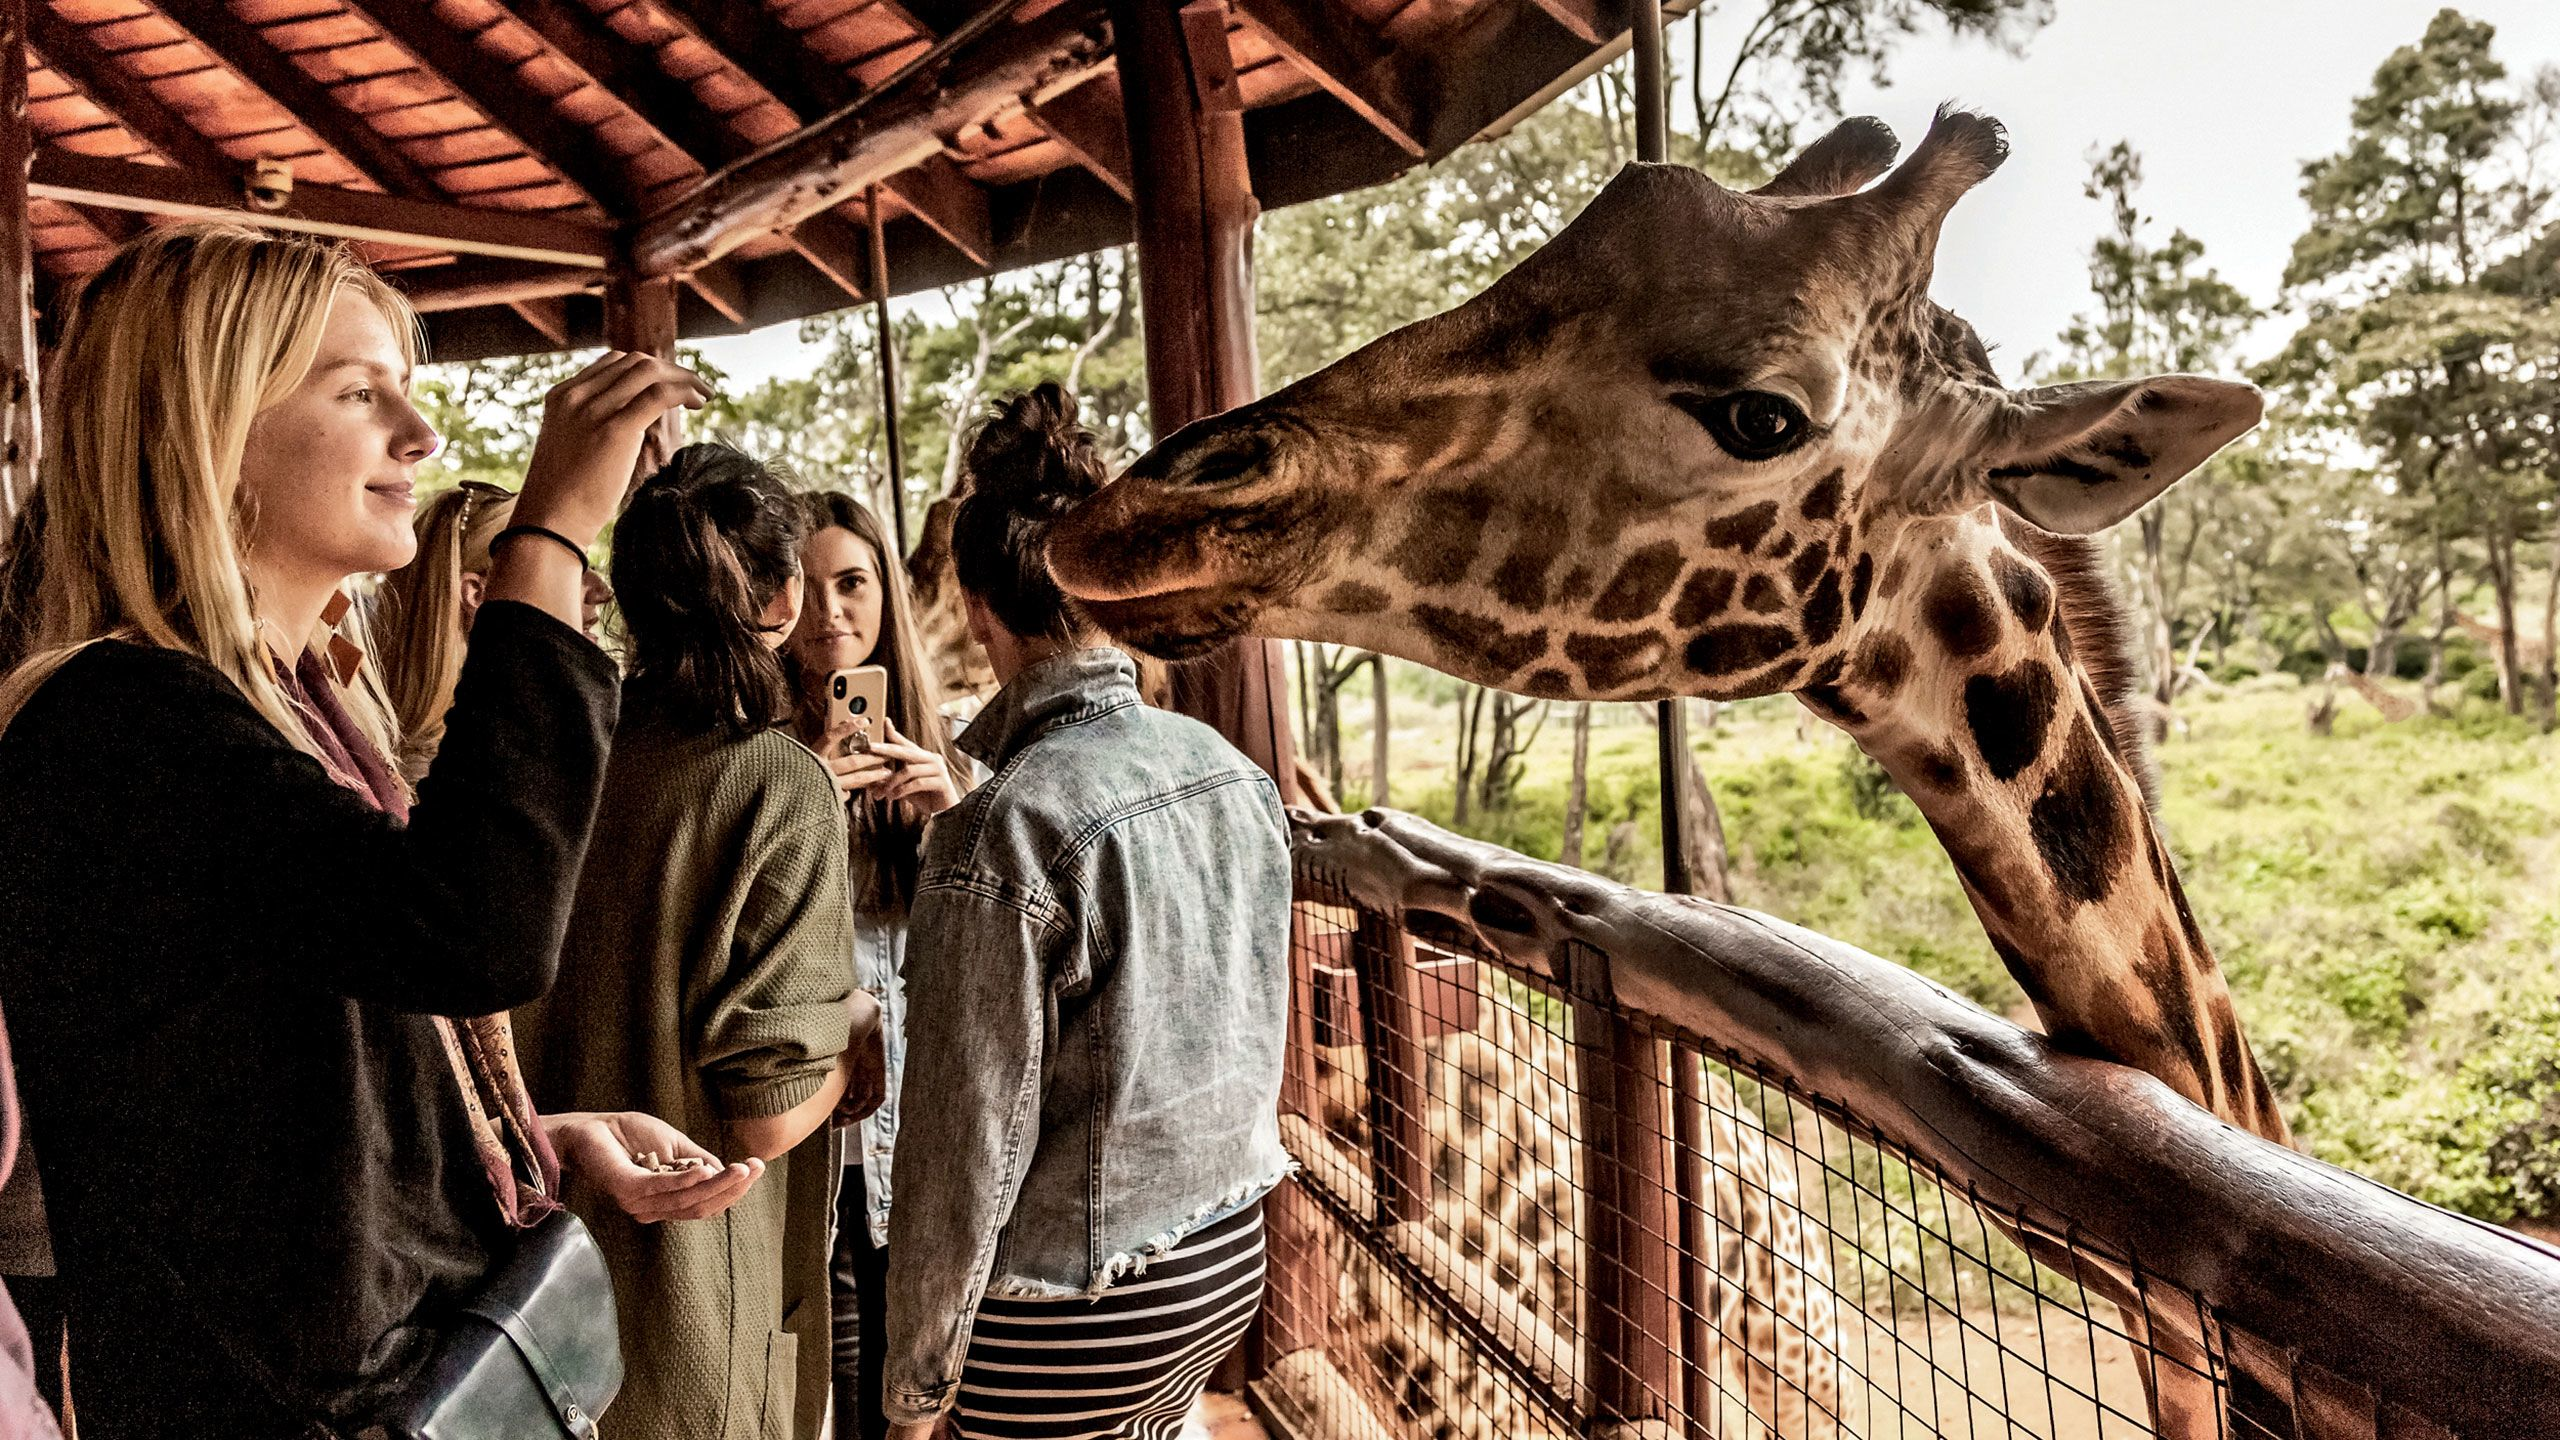 A guest feeds a giraffe at the popular Giraffe Center in Nairobi. Photo by Susan Portnoy